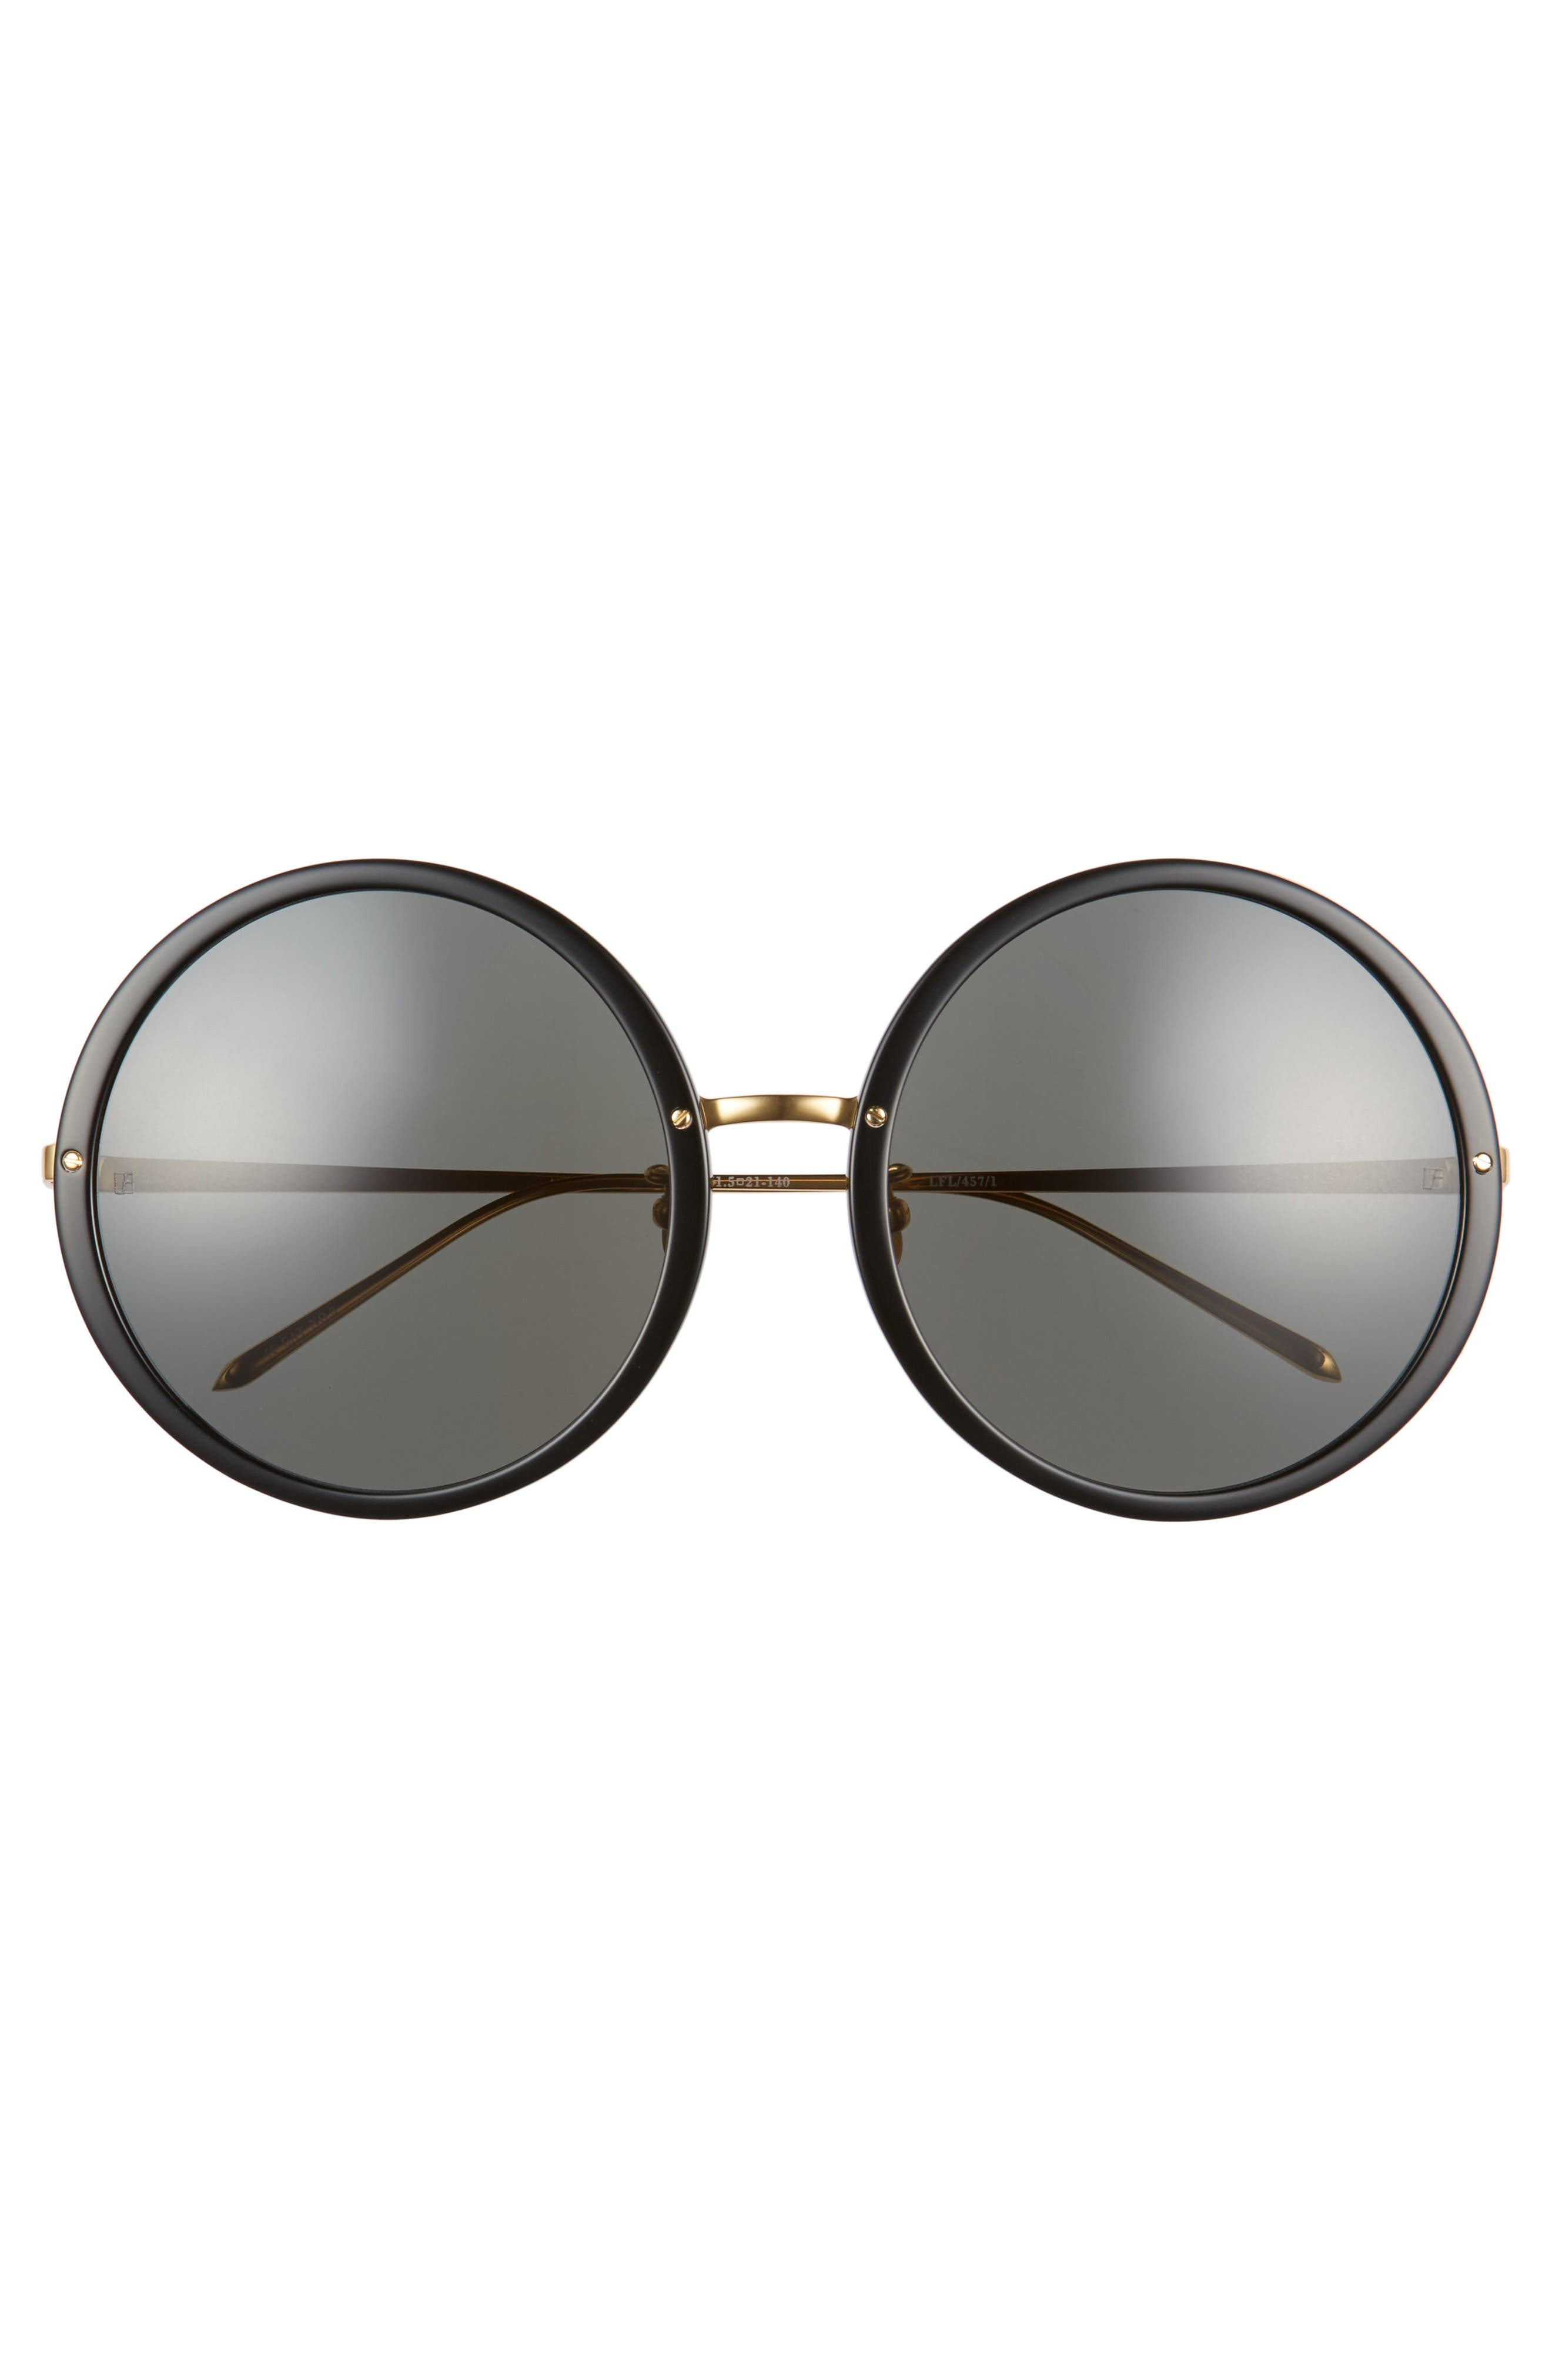 61mm Round 18 Karat Gold Trim Sunglasses,                             Alternate thumbnail 3, color,                             Black/ Yellow Gold/ Grey